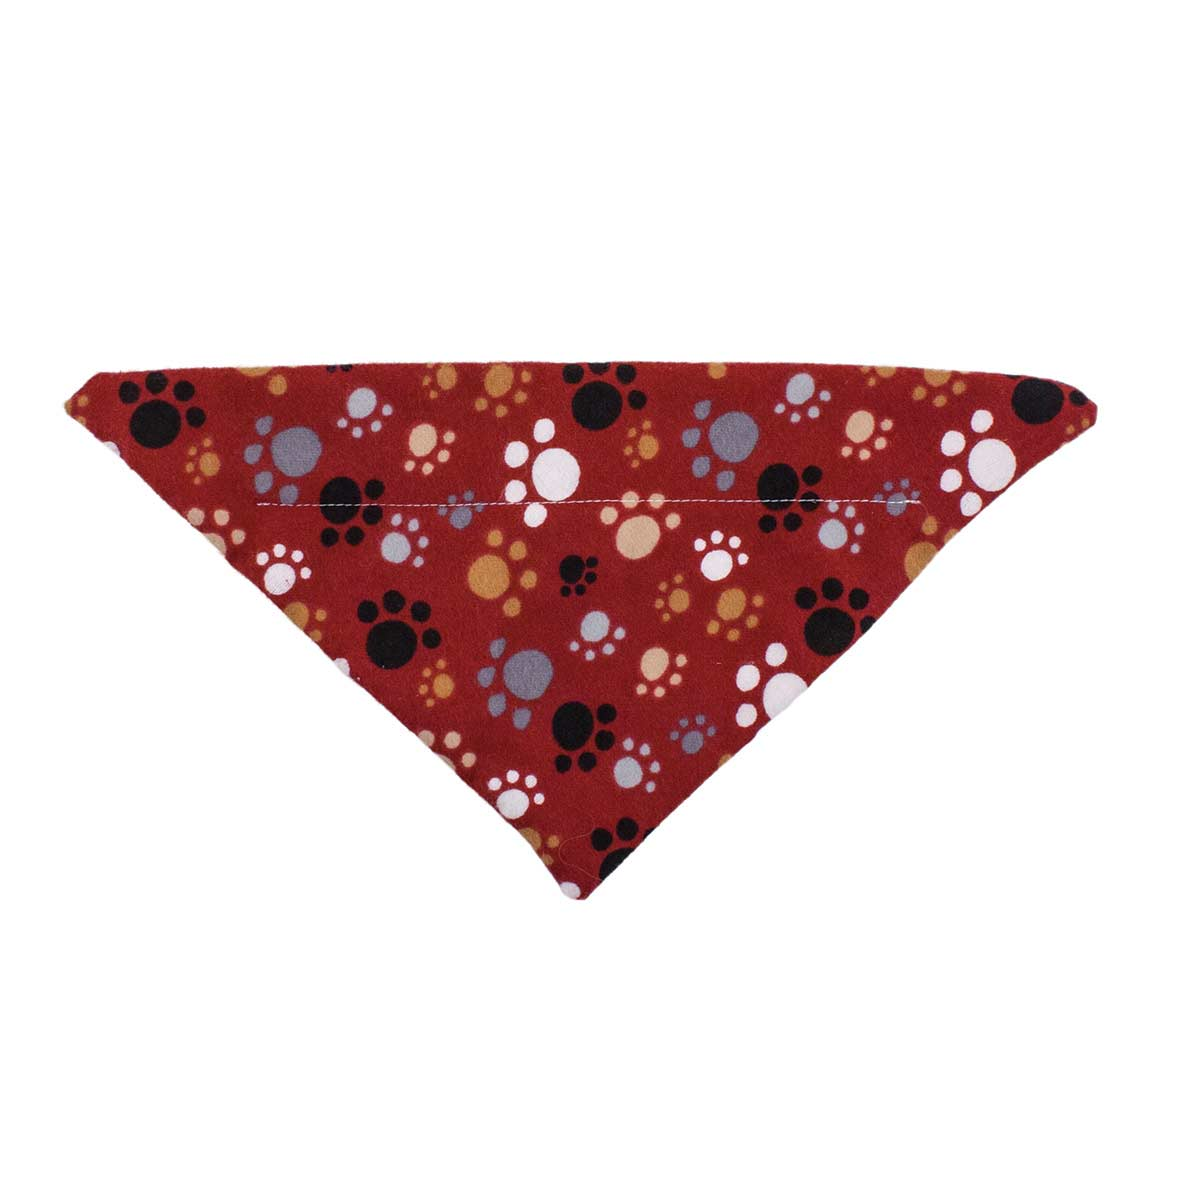 Flannel Puppy Paws X-Small 7.5 inch Dog Collar Bandana at Ryan's Pet Supplies